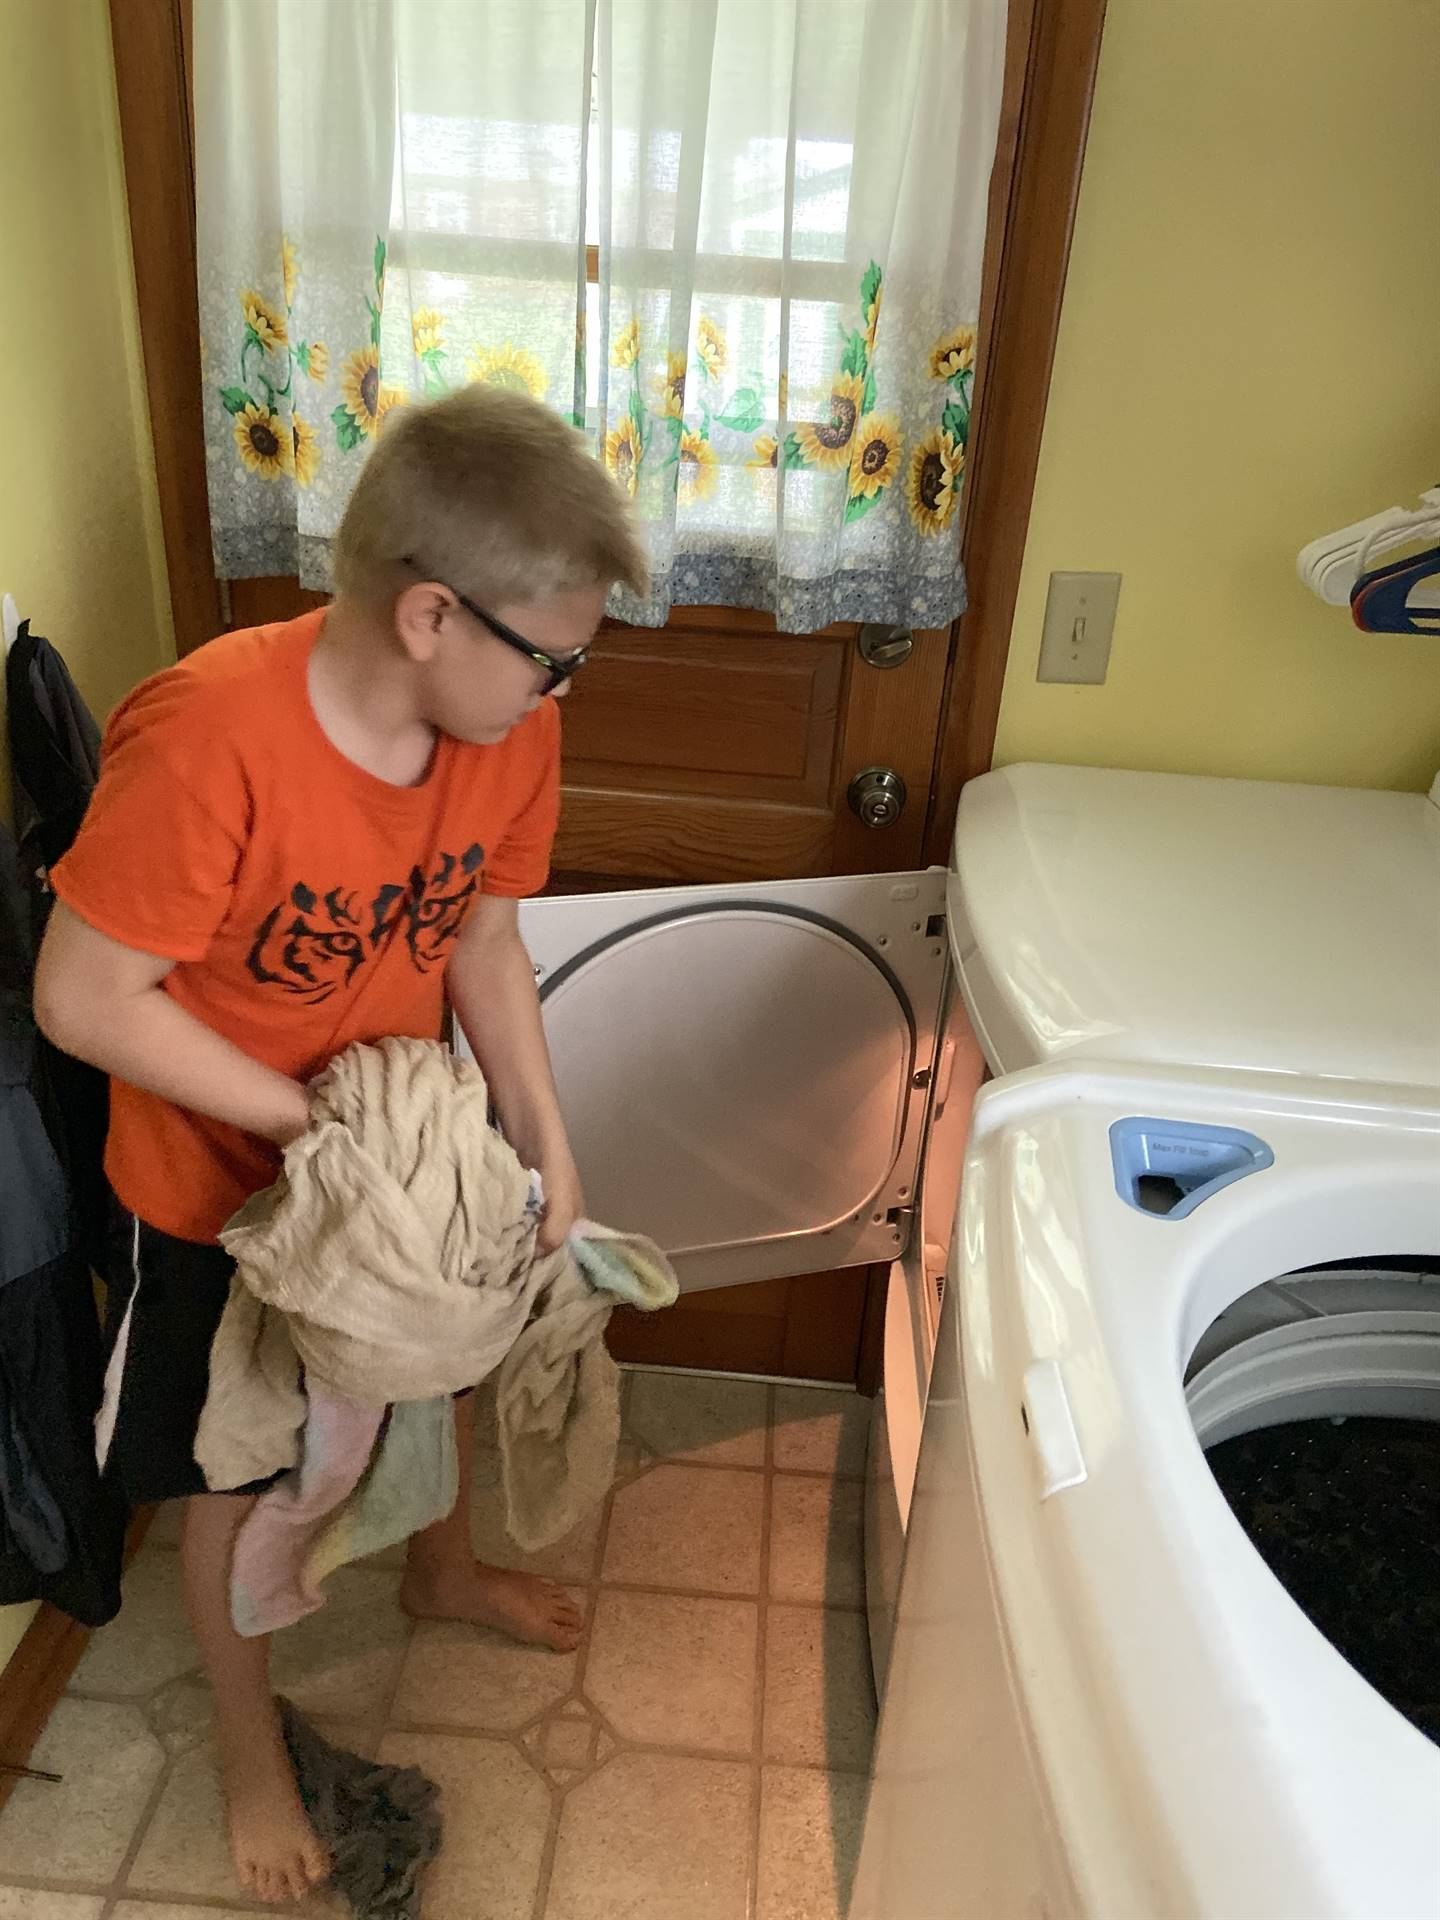 boy with laundry